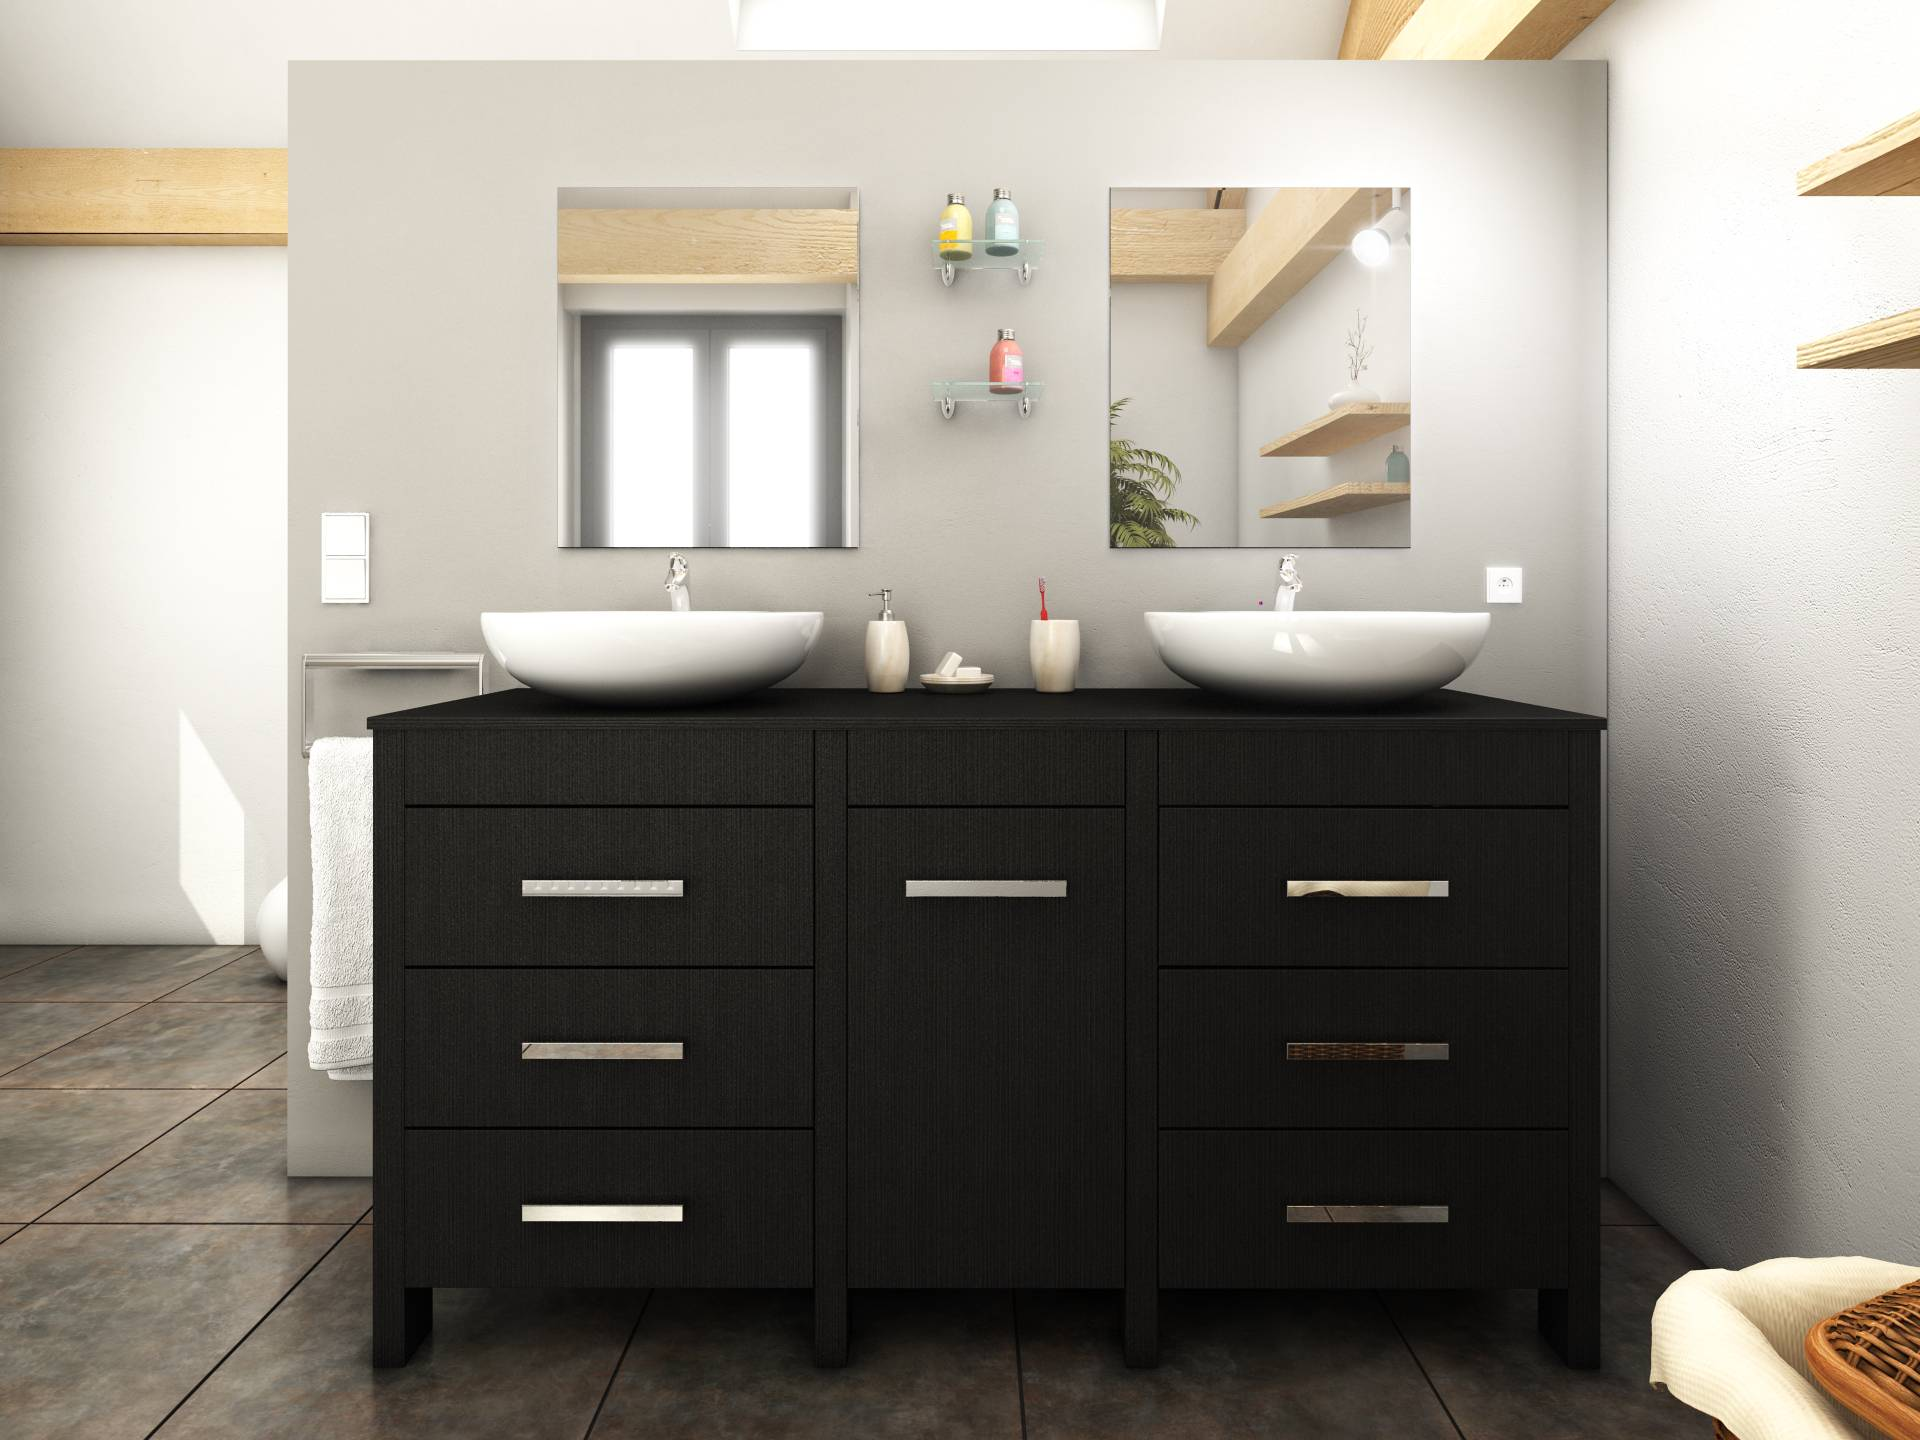 meuble salle de bain a tiroir 37481 salle de bain id es. Black Bedroom Furniture Sets. Home Design Ideas